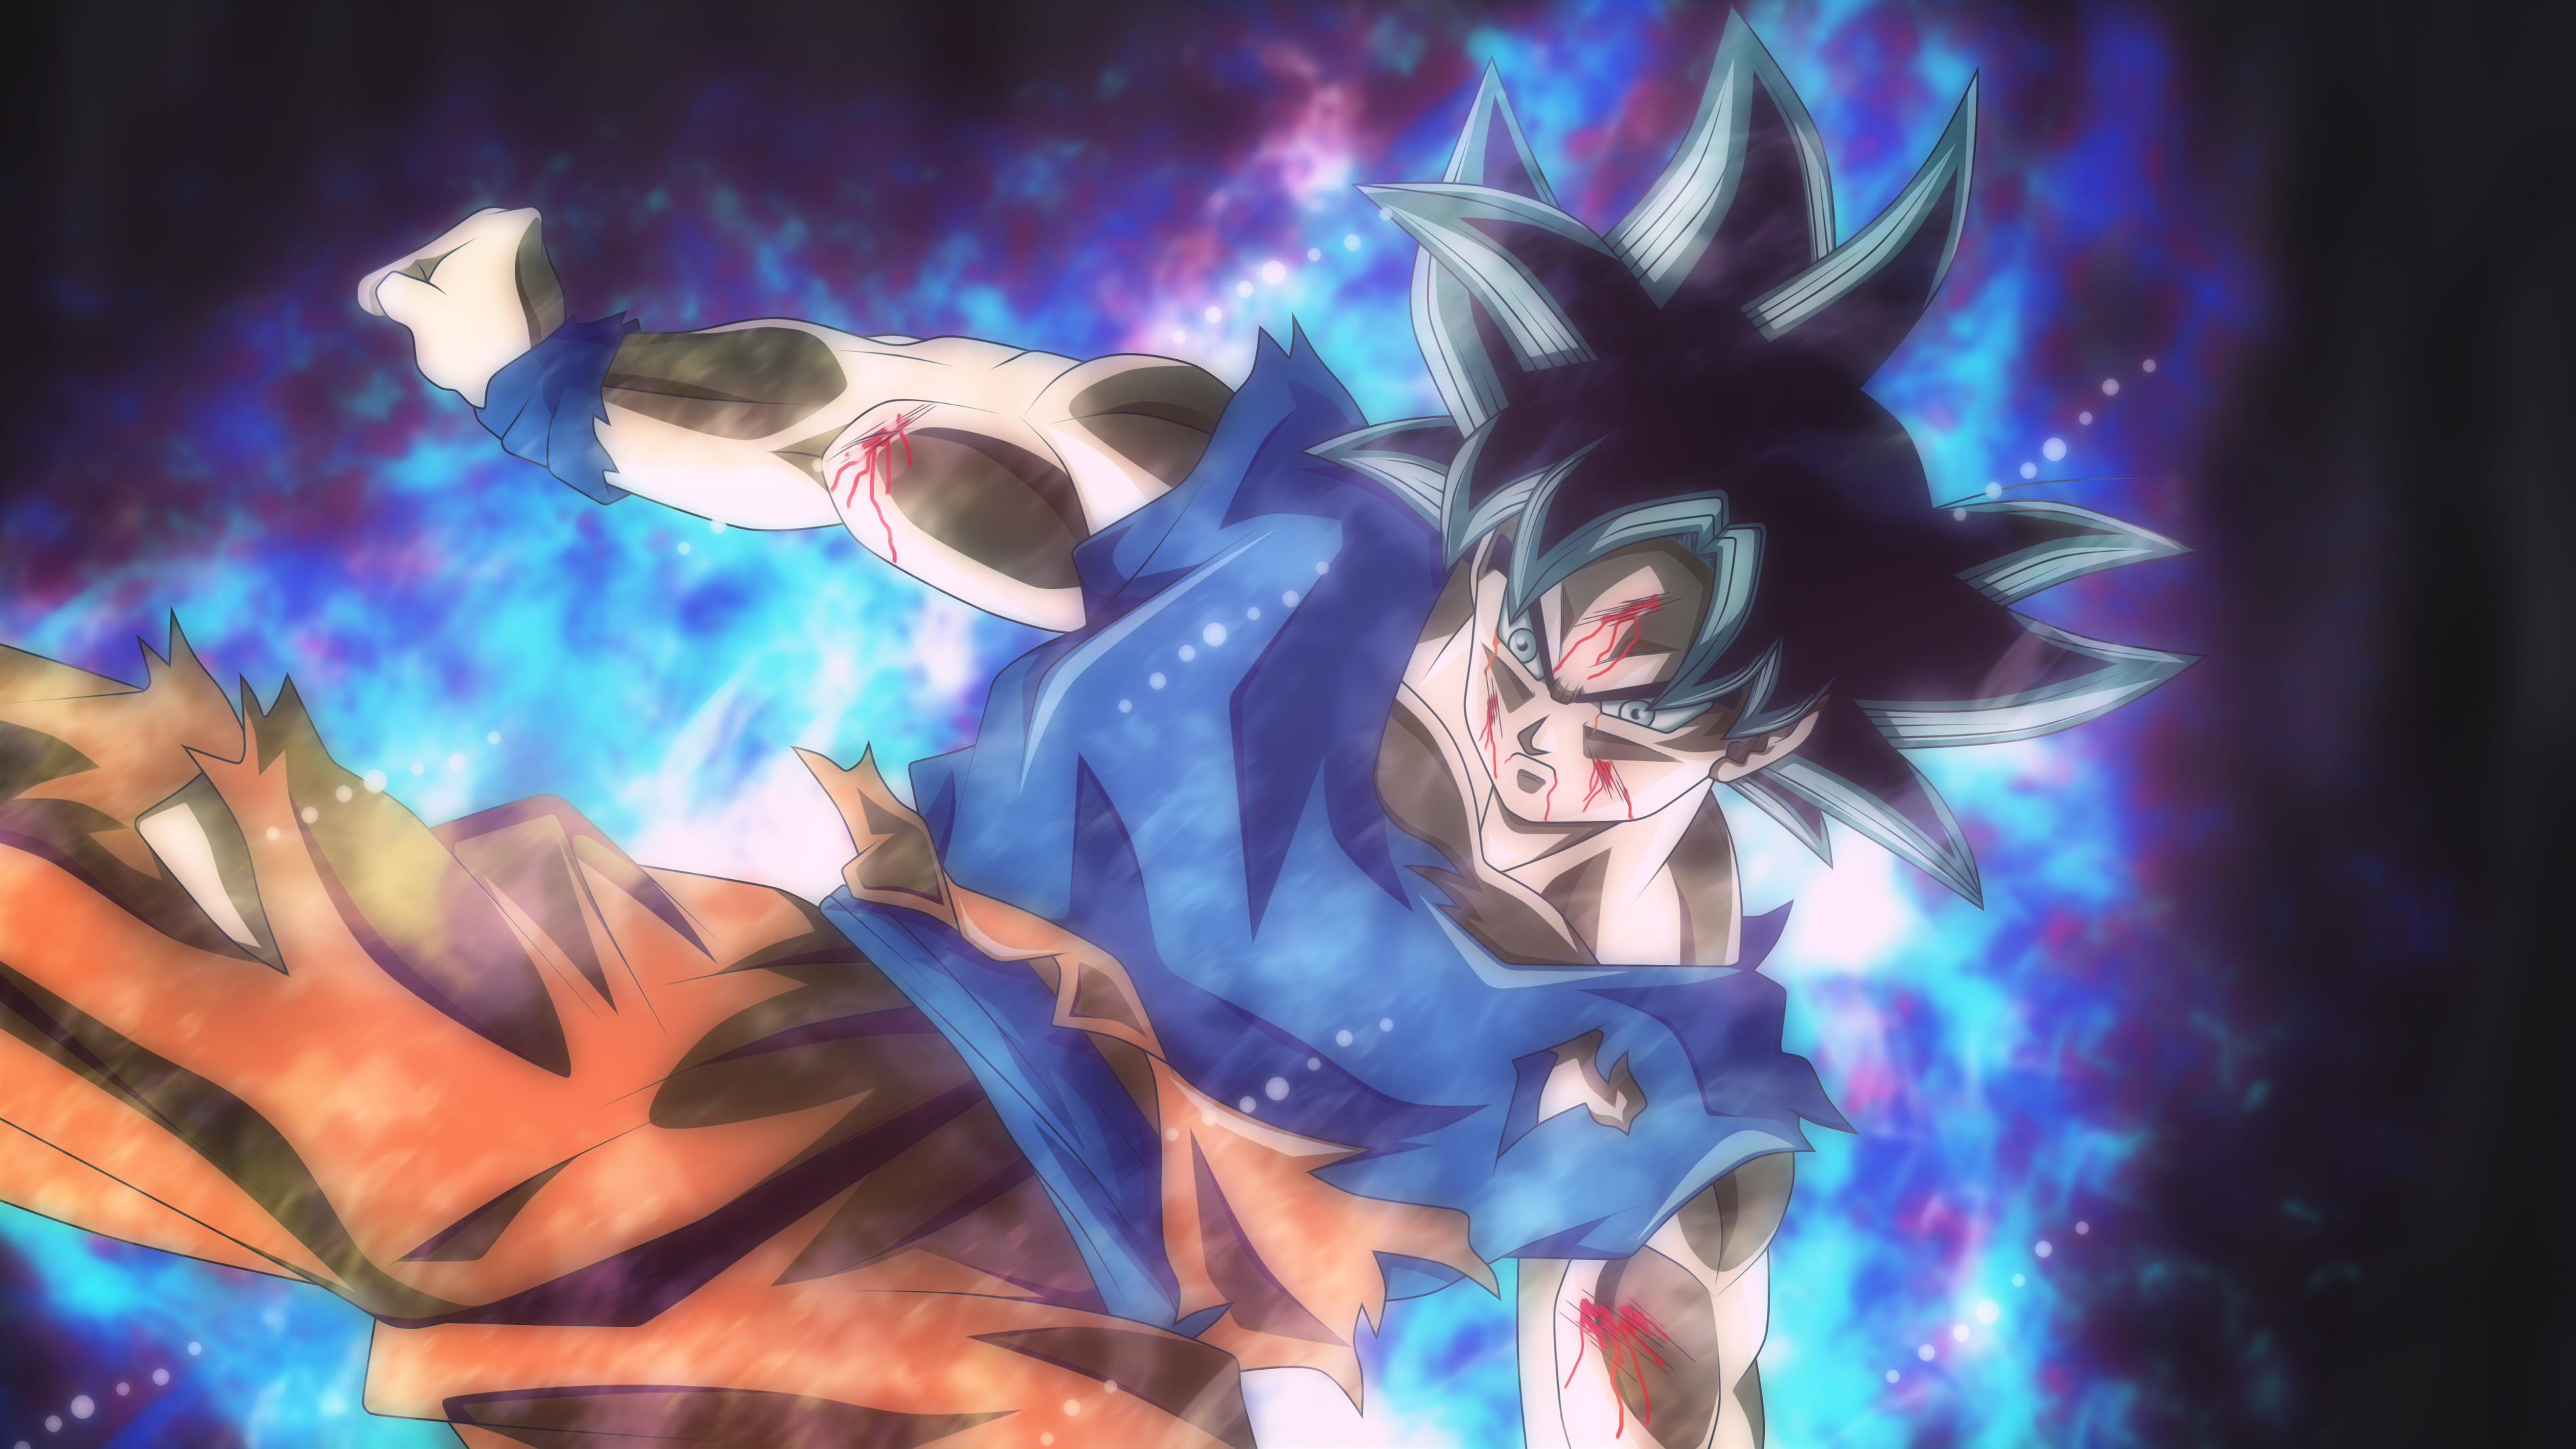 Dbz 3d Wallpapers Anime Dragon Ball Super Hd Anime 4k Wallpapers Images